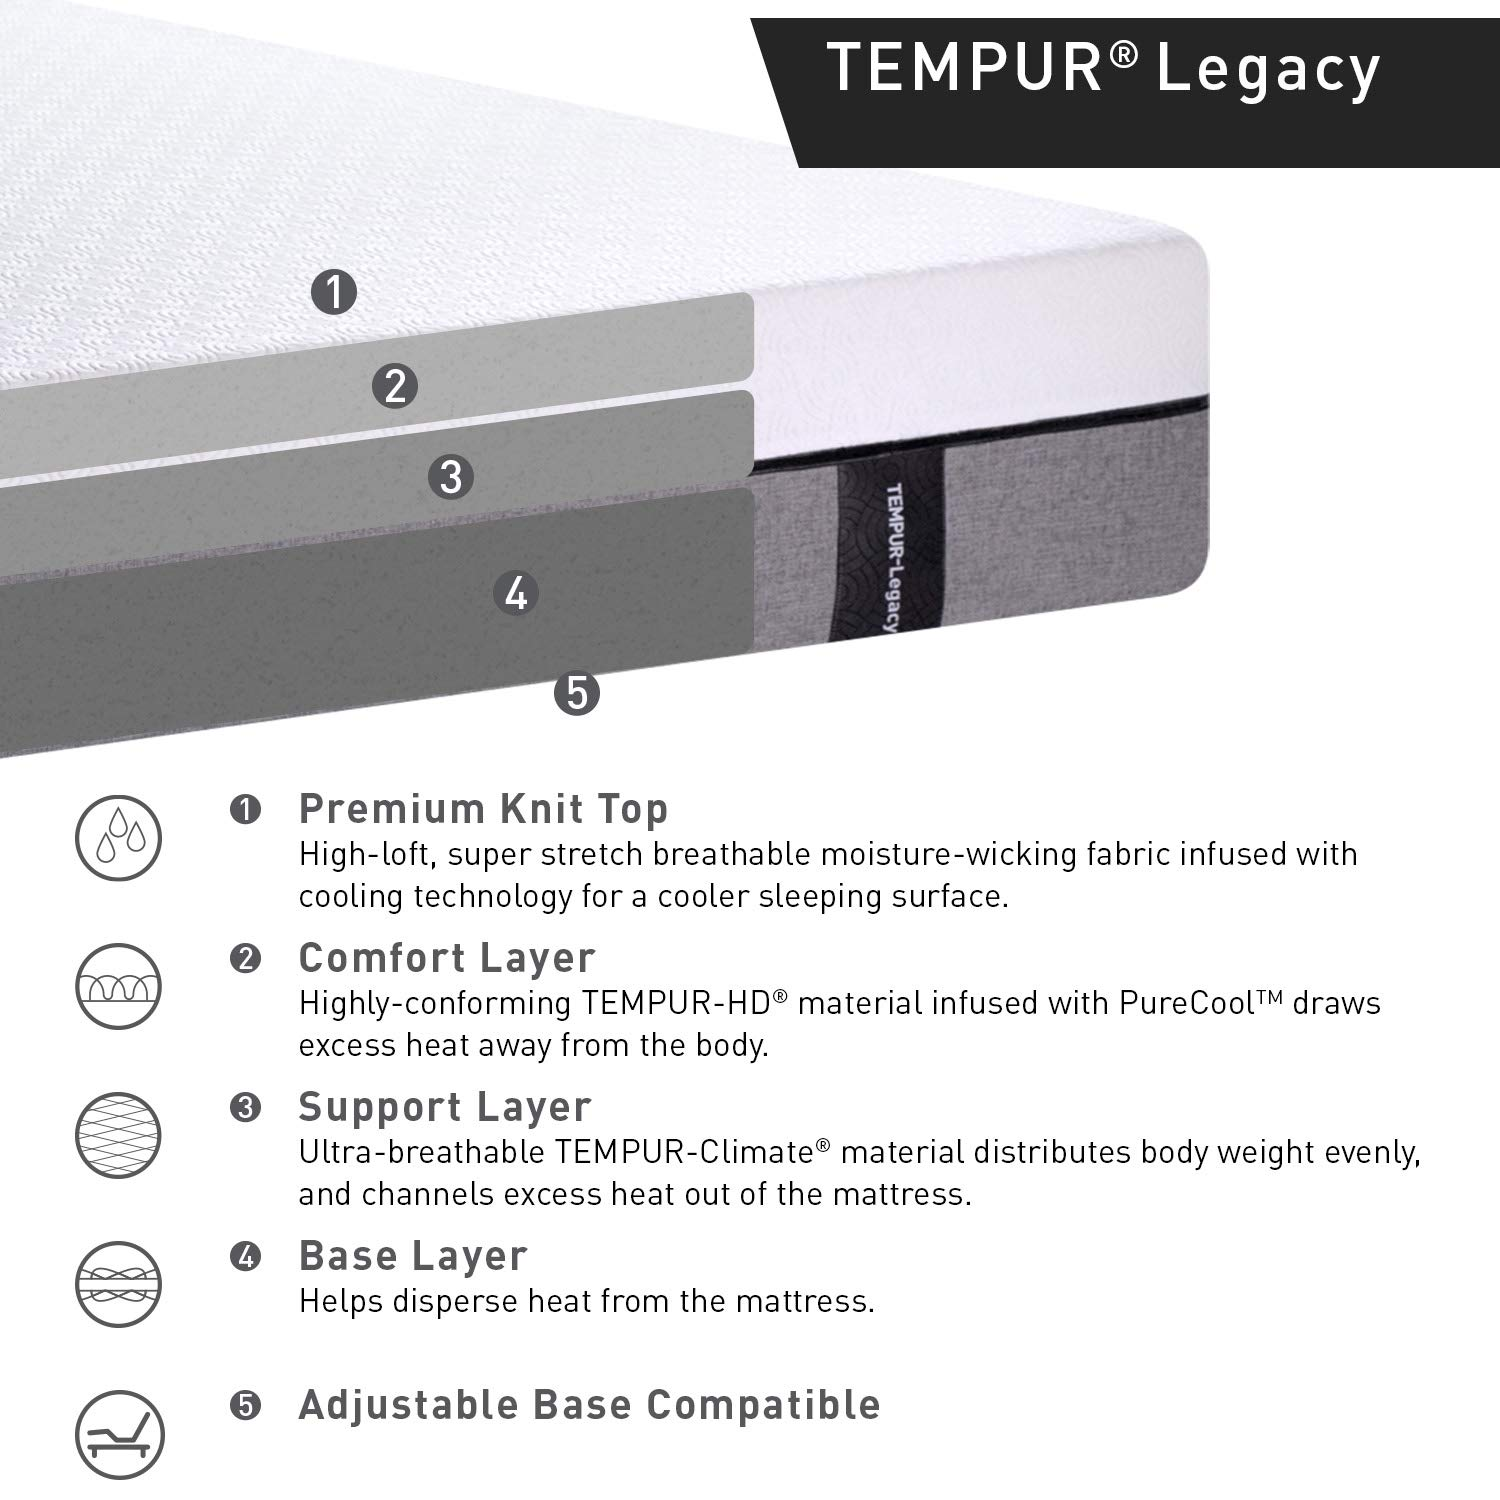 Amazon.com: Tempur-Pedic TEMPUR-Legacy Soft Cooling Foam Mattress, Queen, Made in USA, 10 Year Warranty: Kitchen & Dining